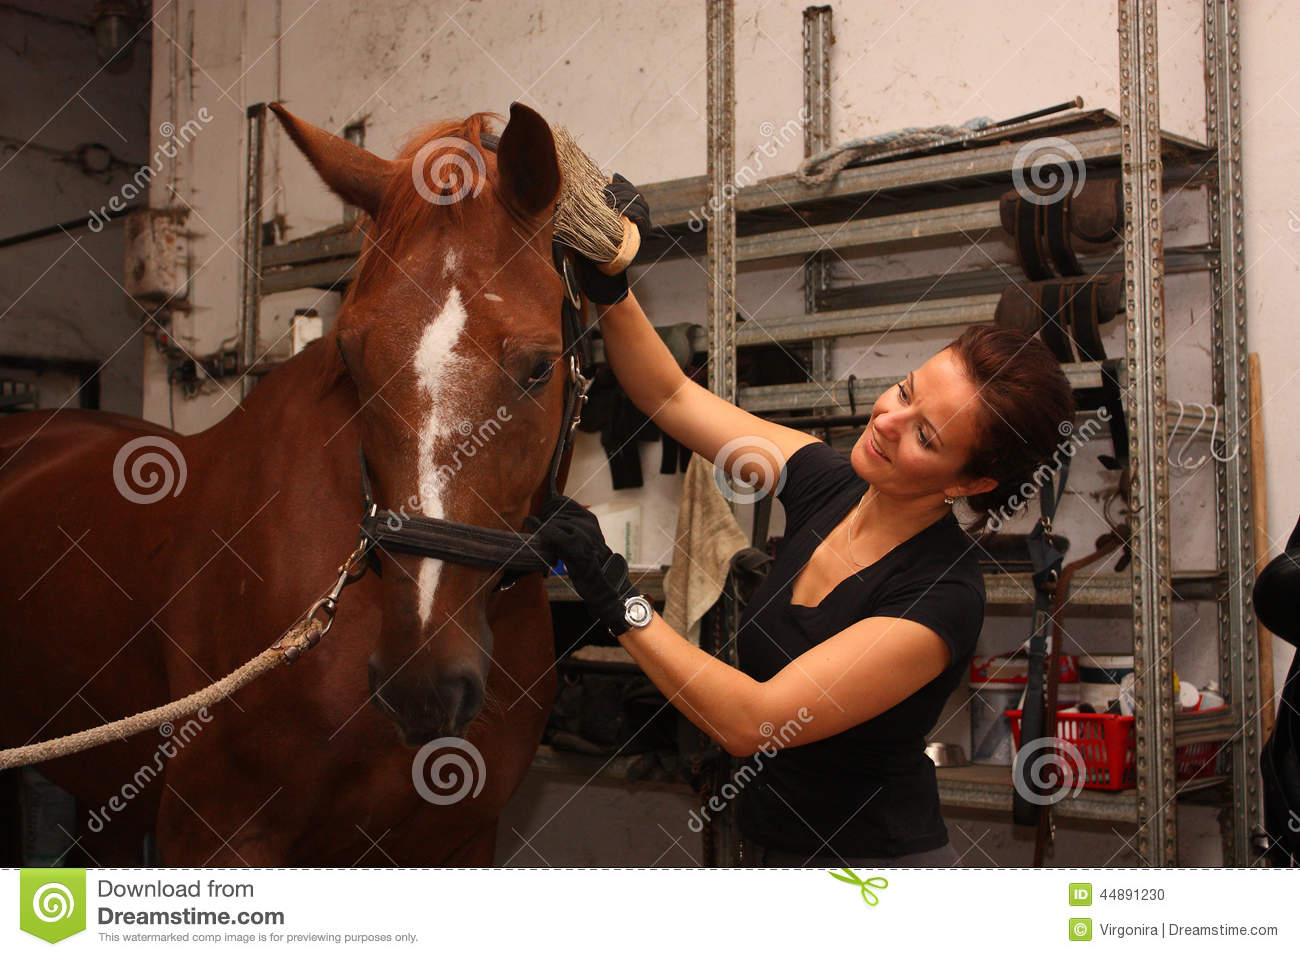 image Brunette horse riding a guy in bikini while baiting him with a banana